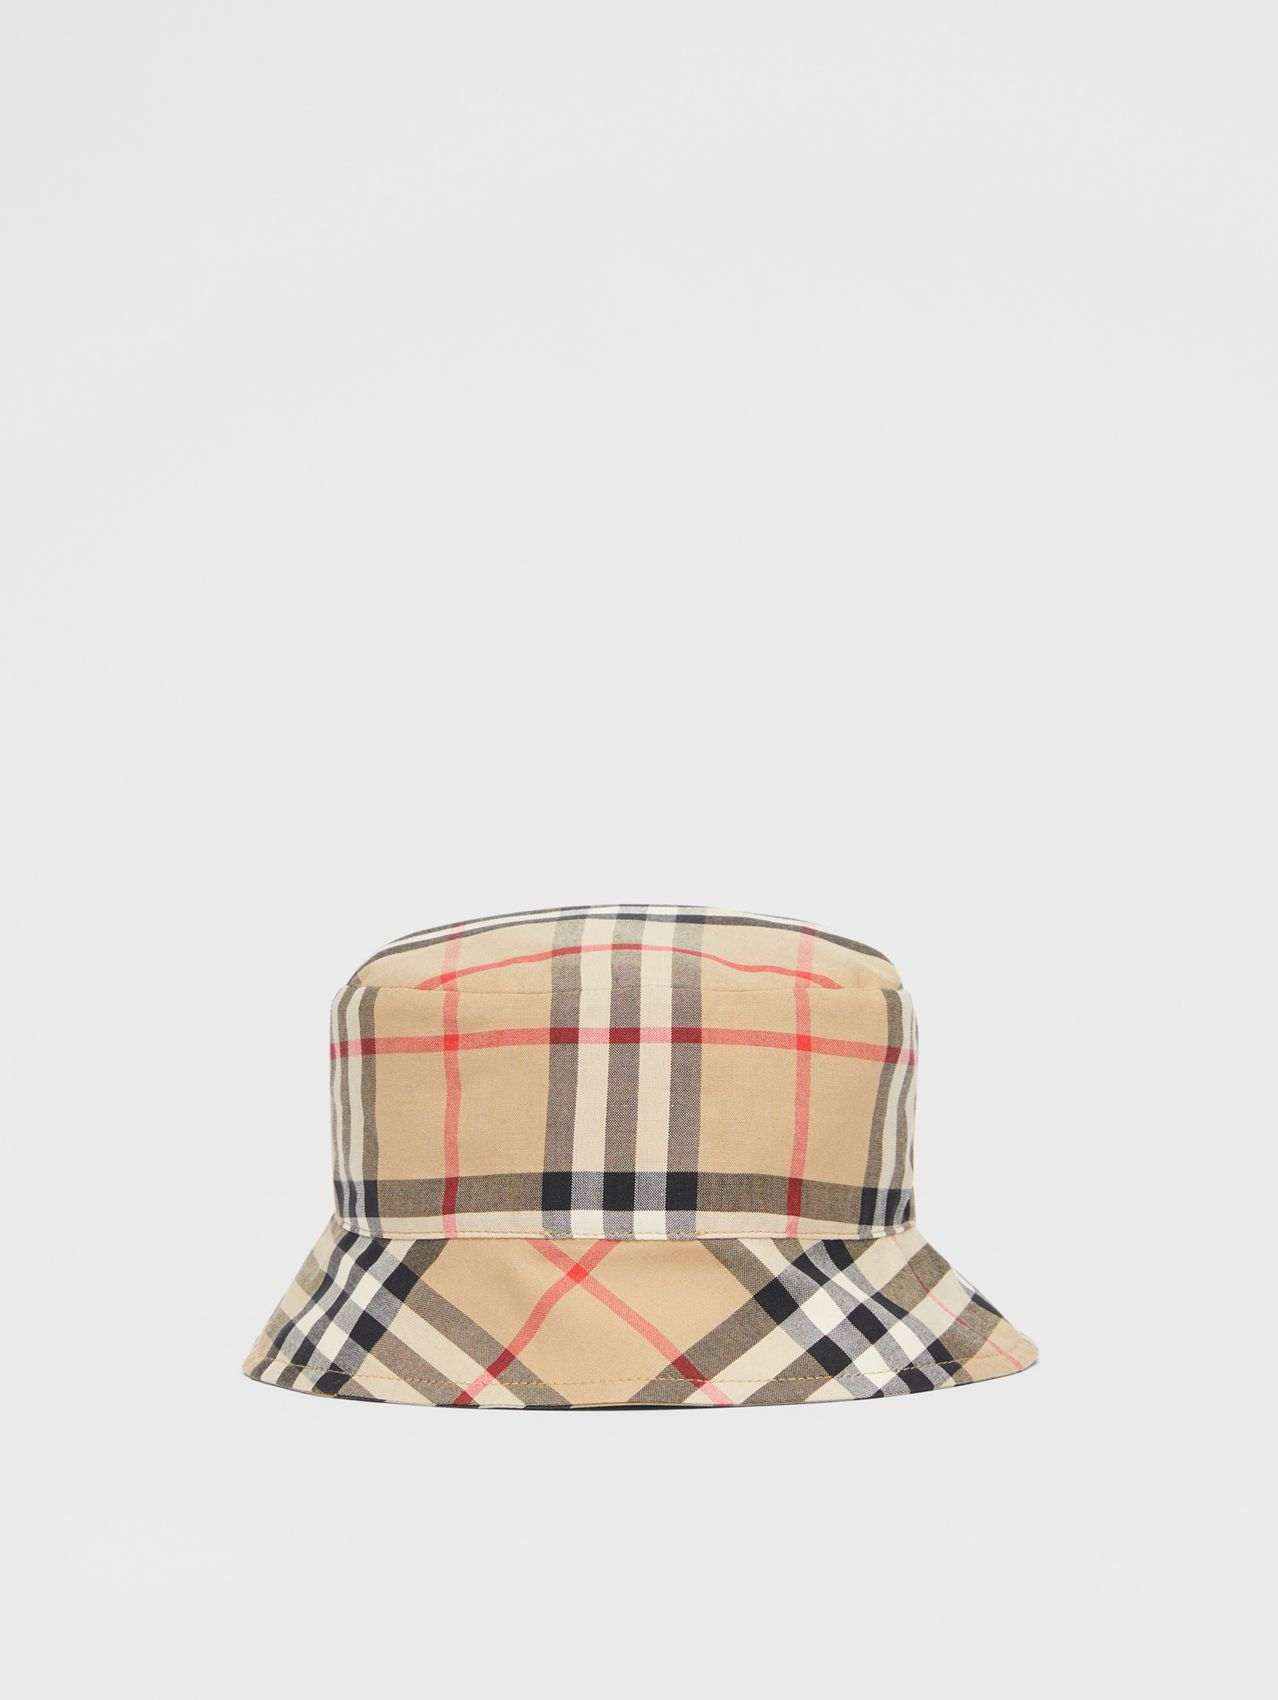 Reversible Vintage Check and Icon Stripe Bucket Hat (Archive Beige)